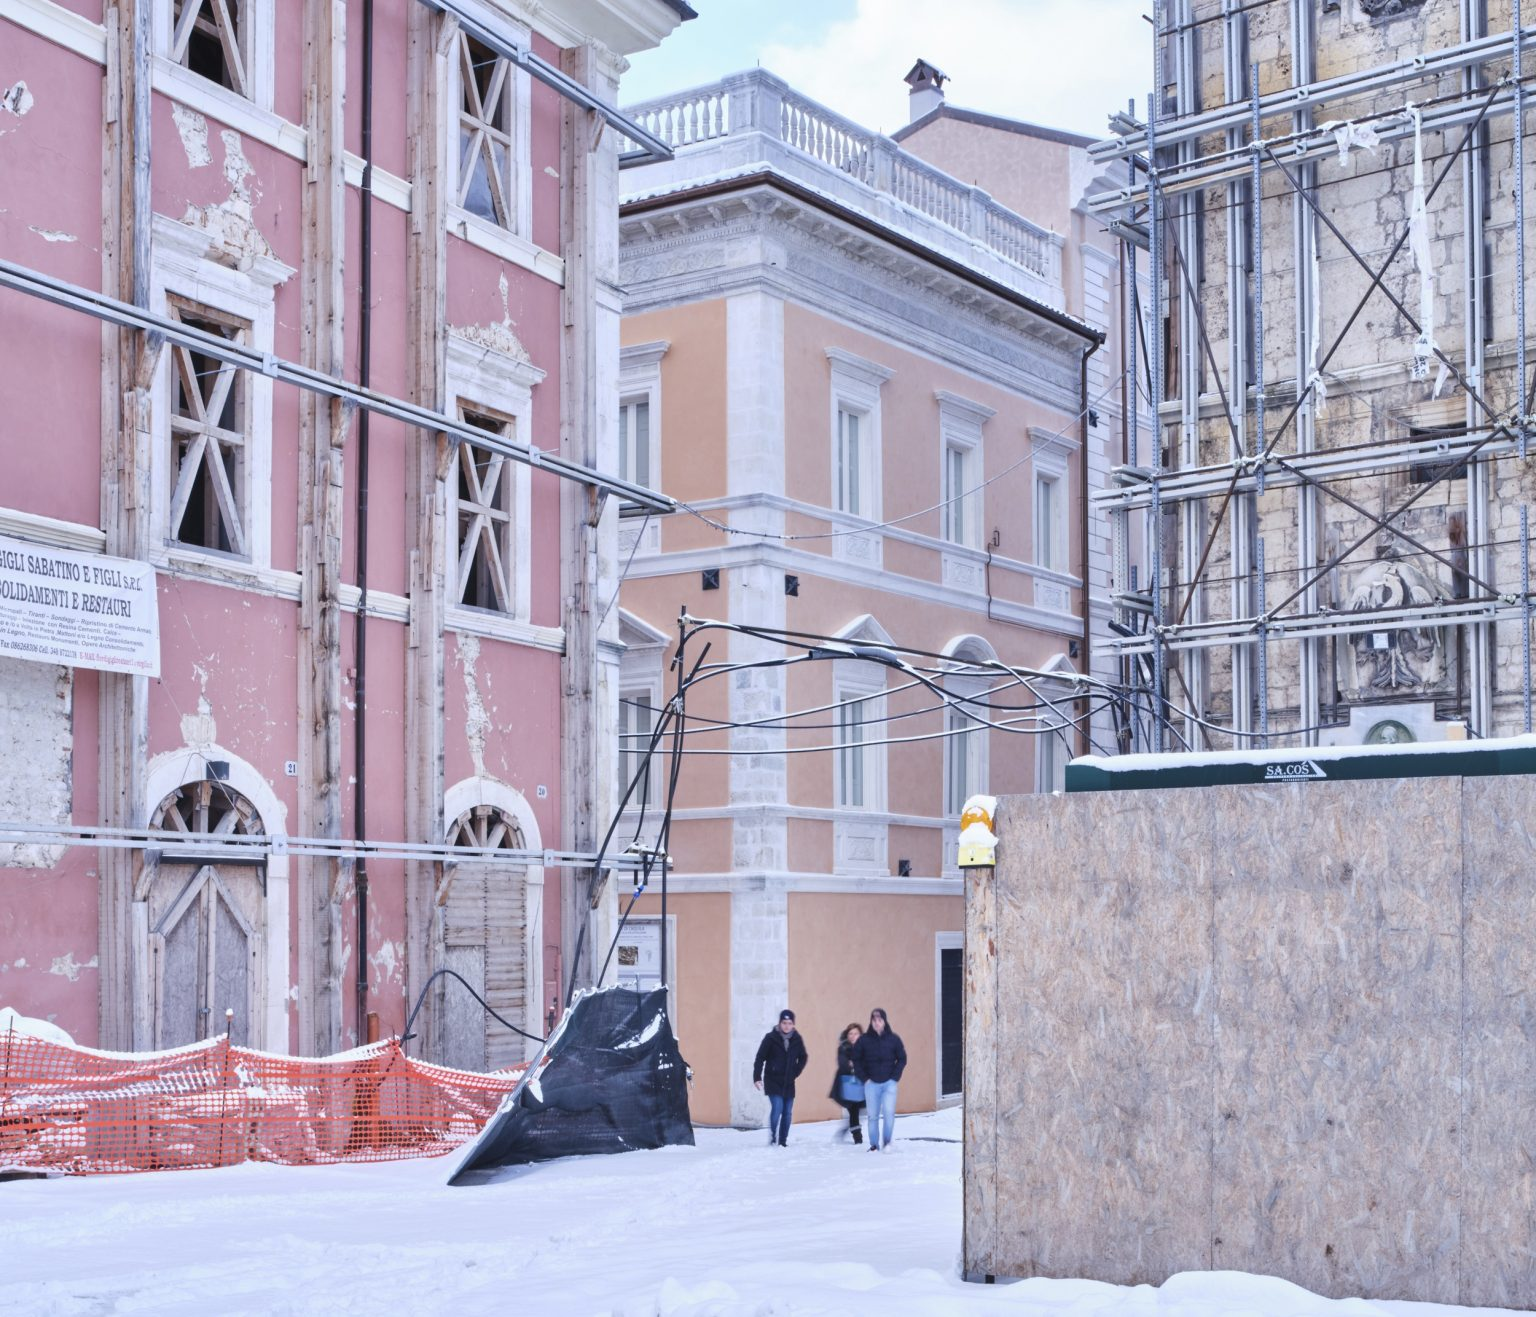 Palazzo square. Final phase of the restoration of the Palazzo del Capitano located in the area of Piazza Palazzo which, since the foundation of L'Aquila, has been the civic center of the city. L'Aquila, historic center, Italy, 2019